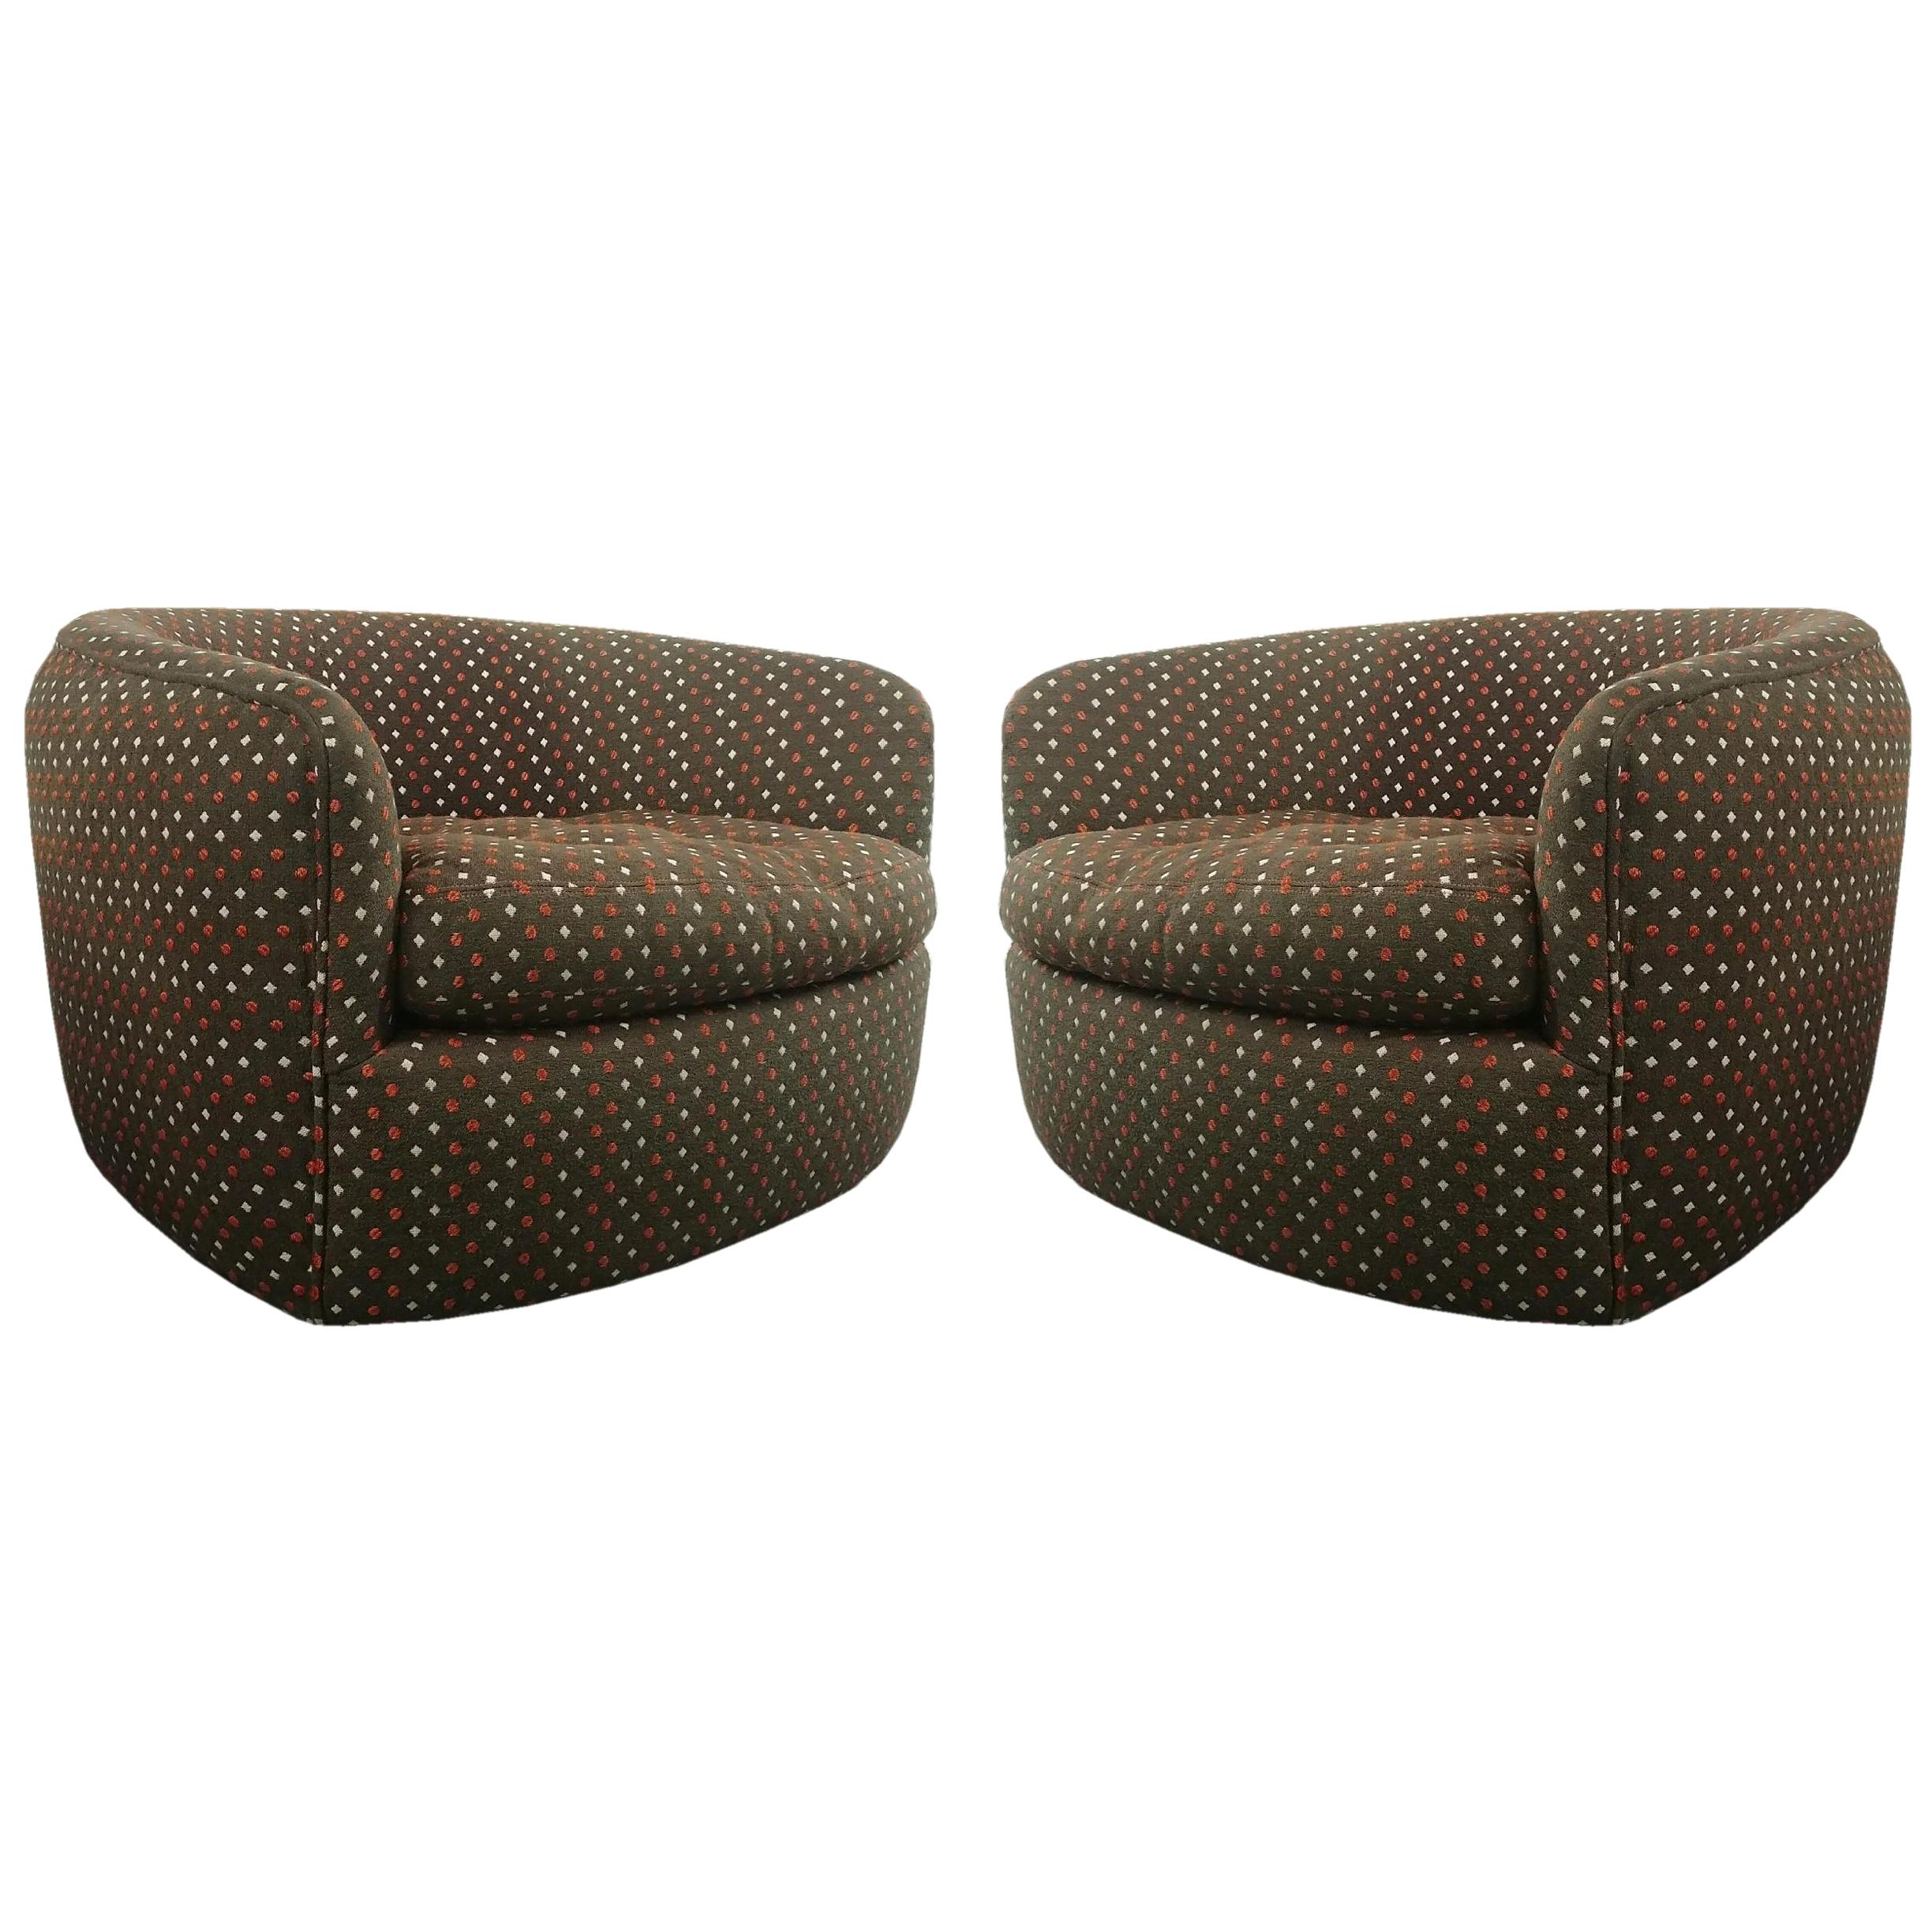 Swivel Tub Chairs Designed by Milo Baughman